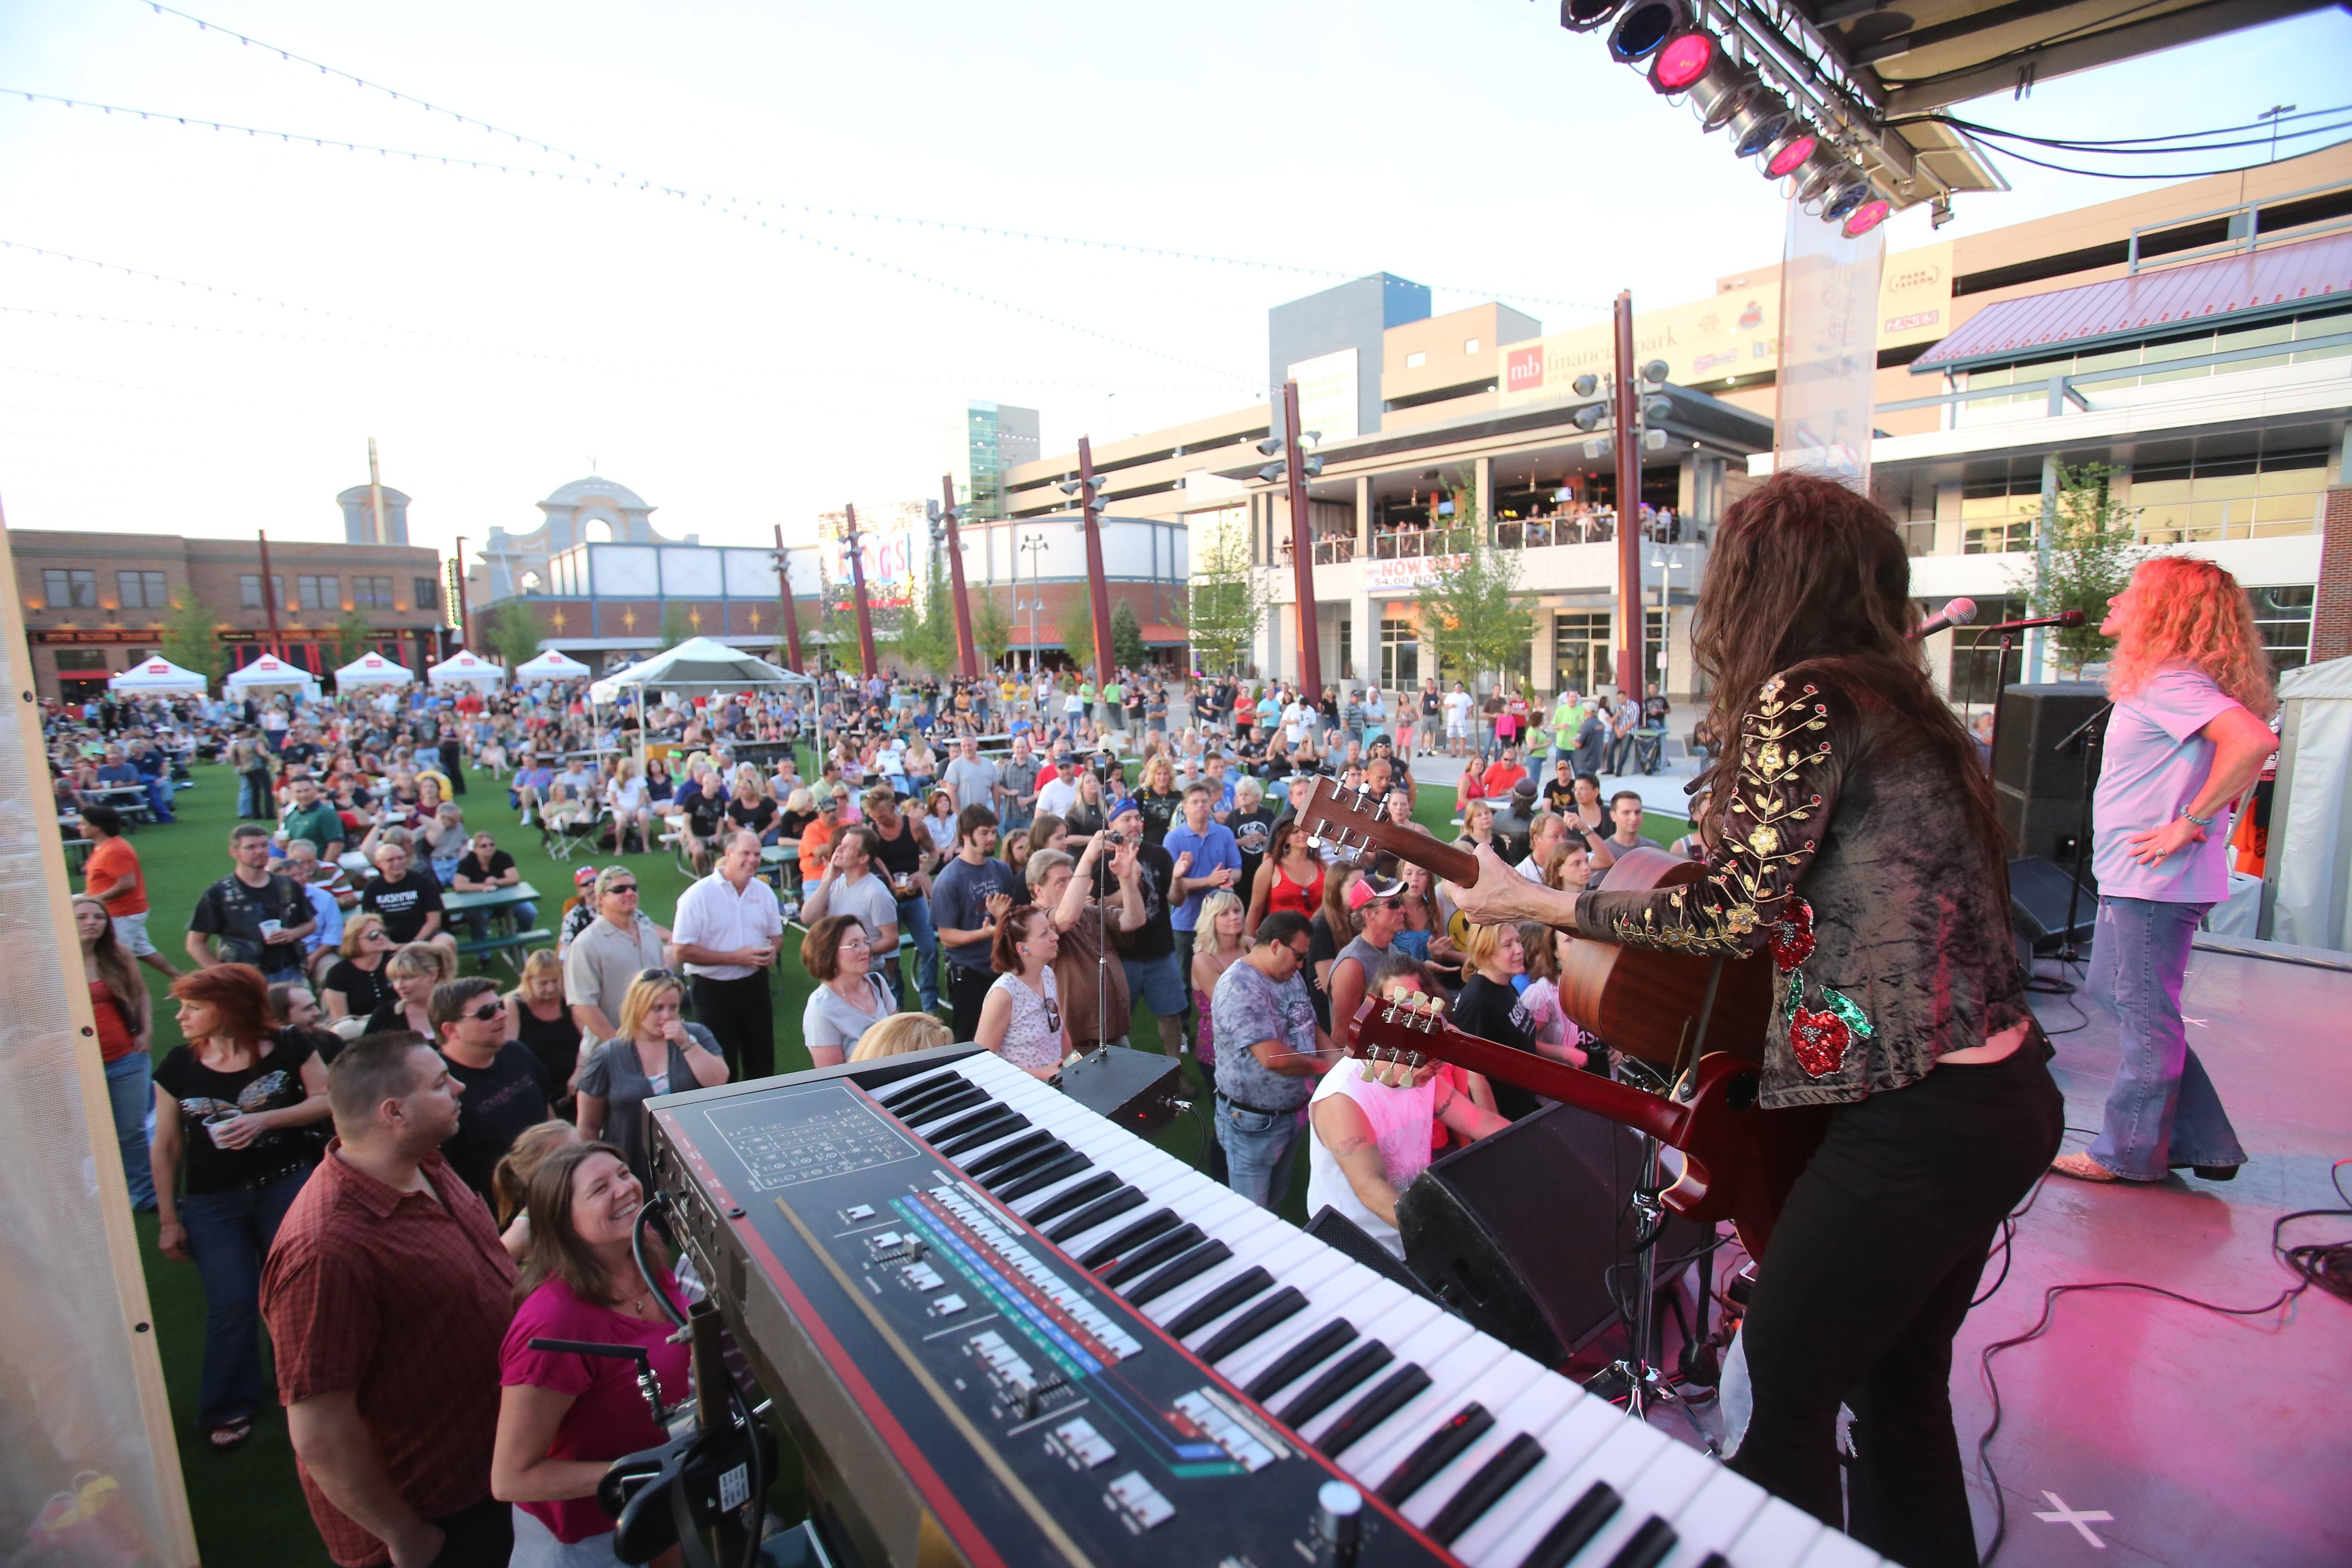 Led Zeppelin tribute band Kashmir will take the stage once again at the summer concert series in Rosemont's entertainment district. Organizers of the Rockin' in the Park concert series announced their 15-performance summer lineup Thursday.